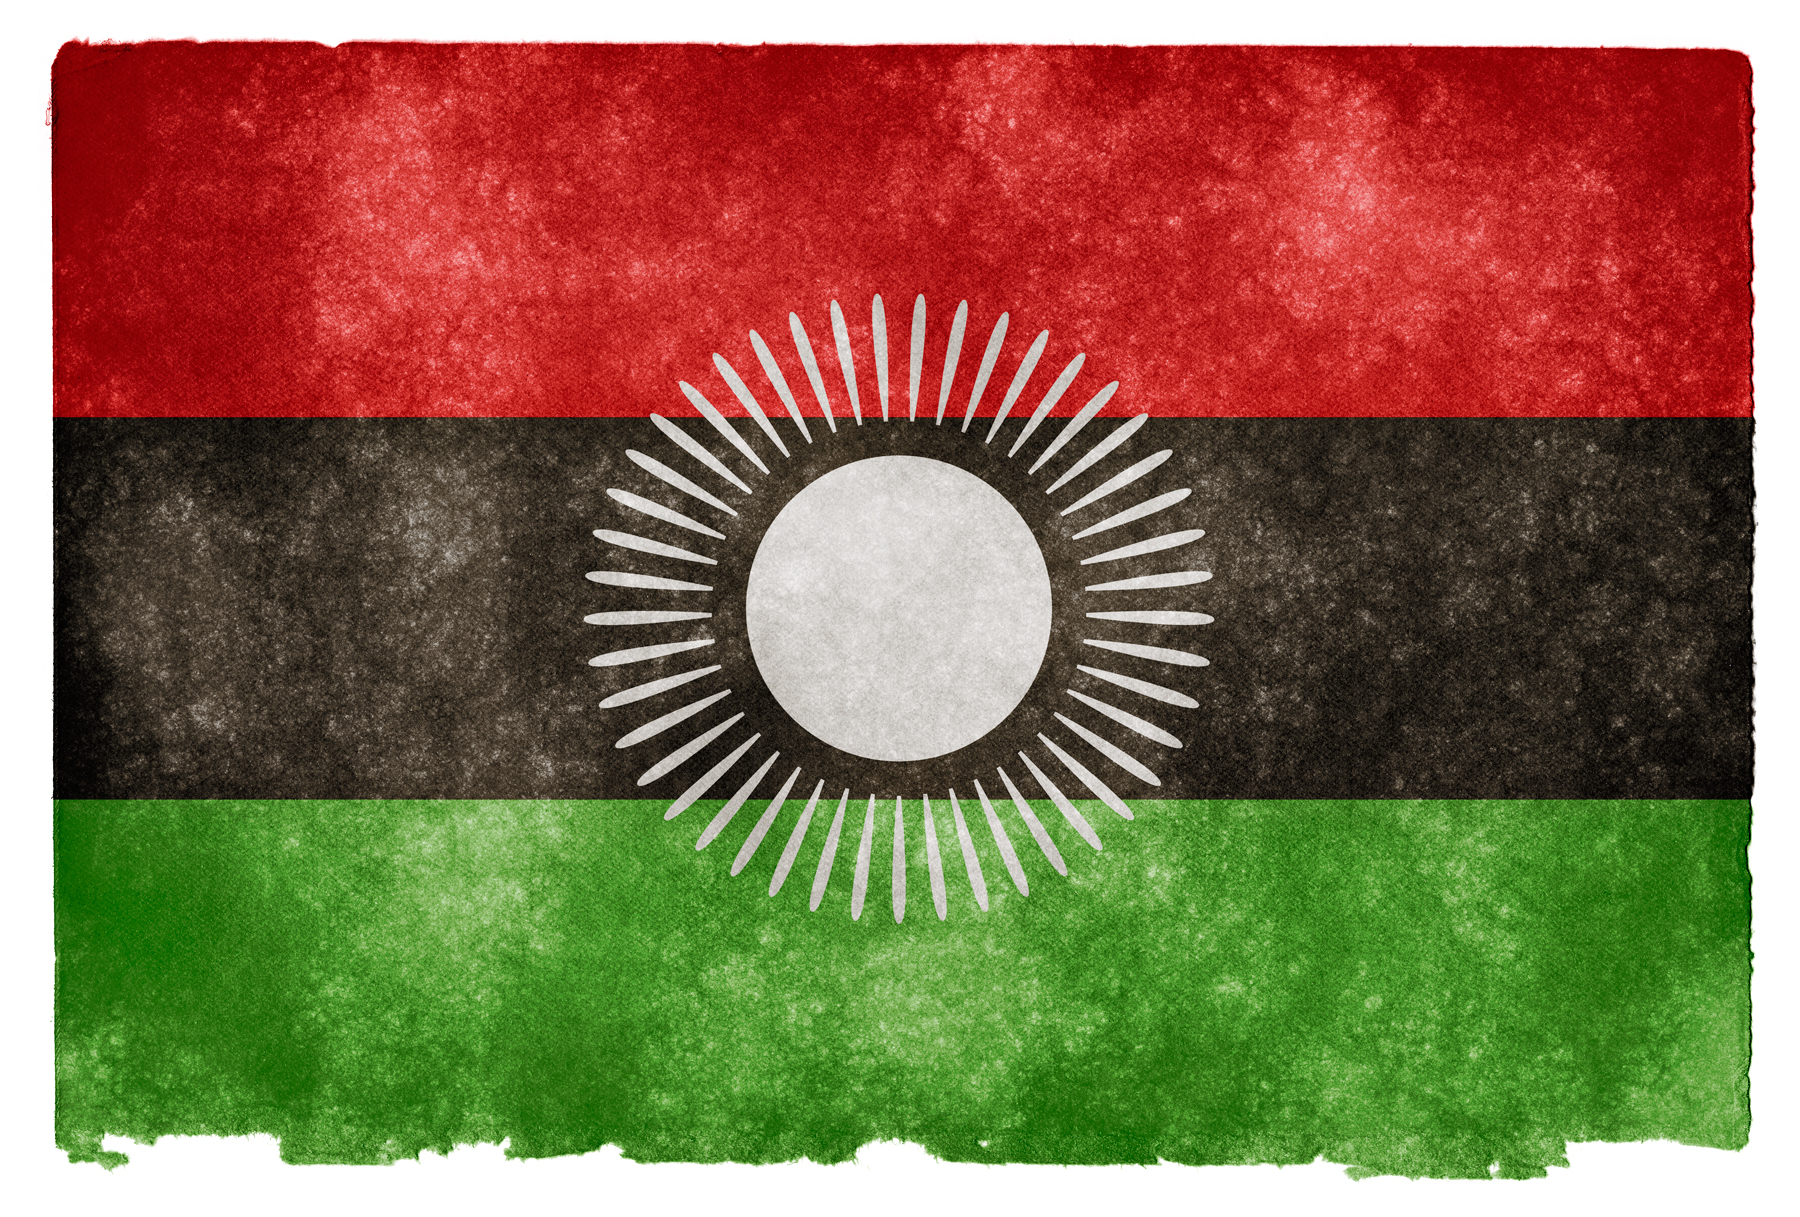 Malawi Grunge Flag, Africa, Round, Paper, Parchment, HQ Photo